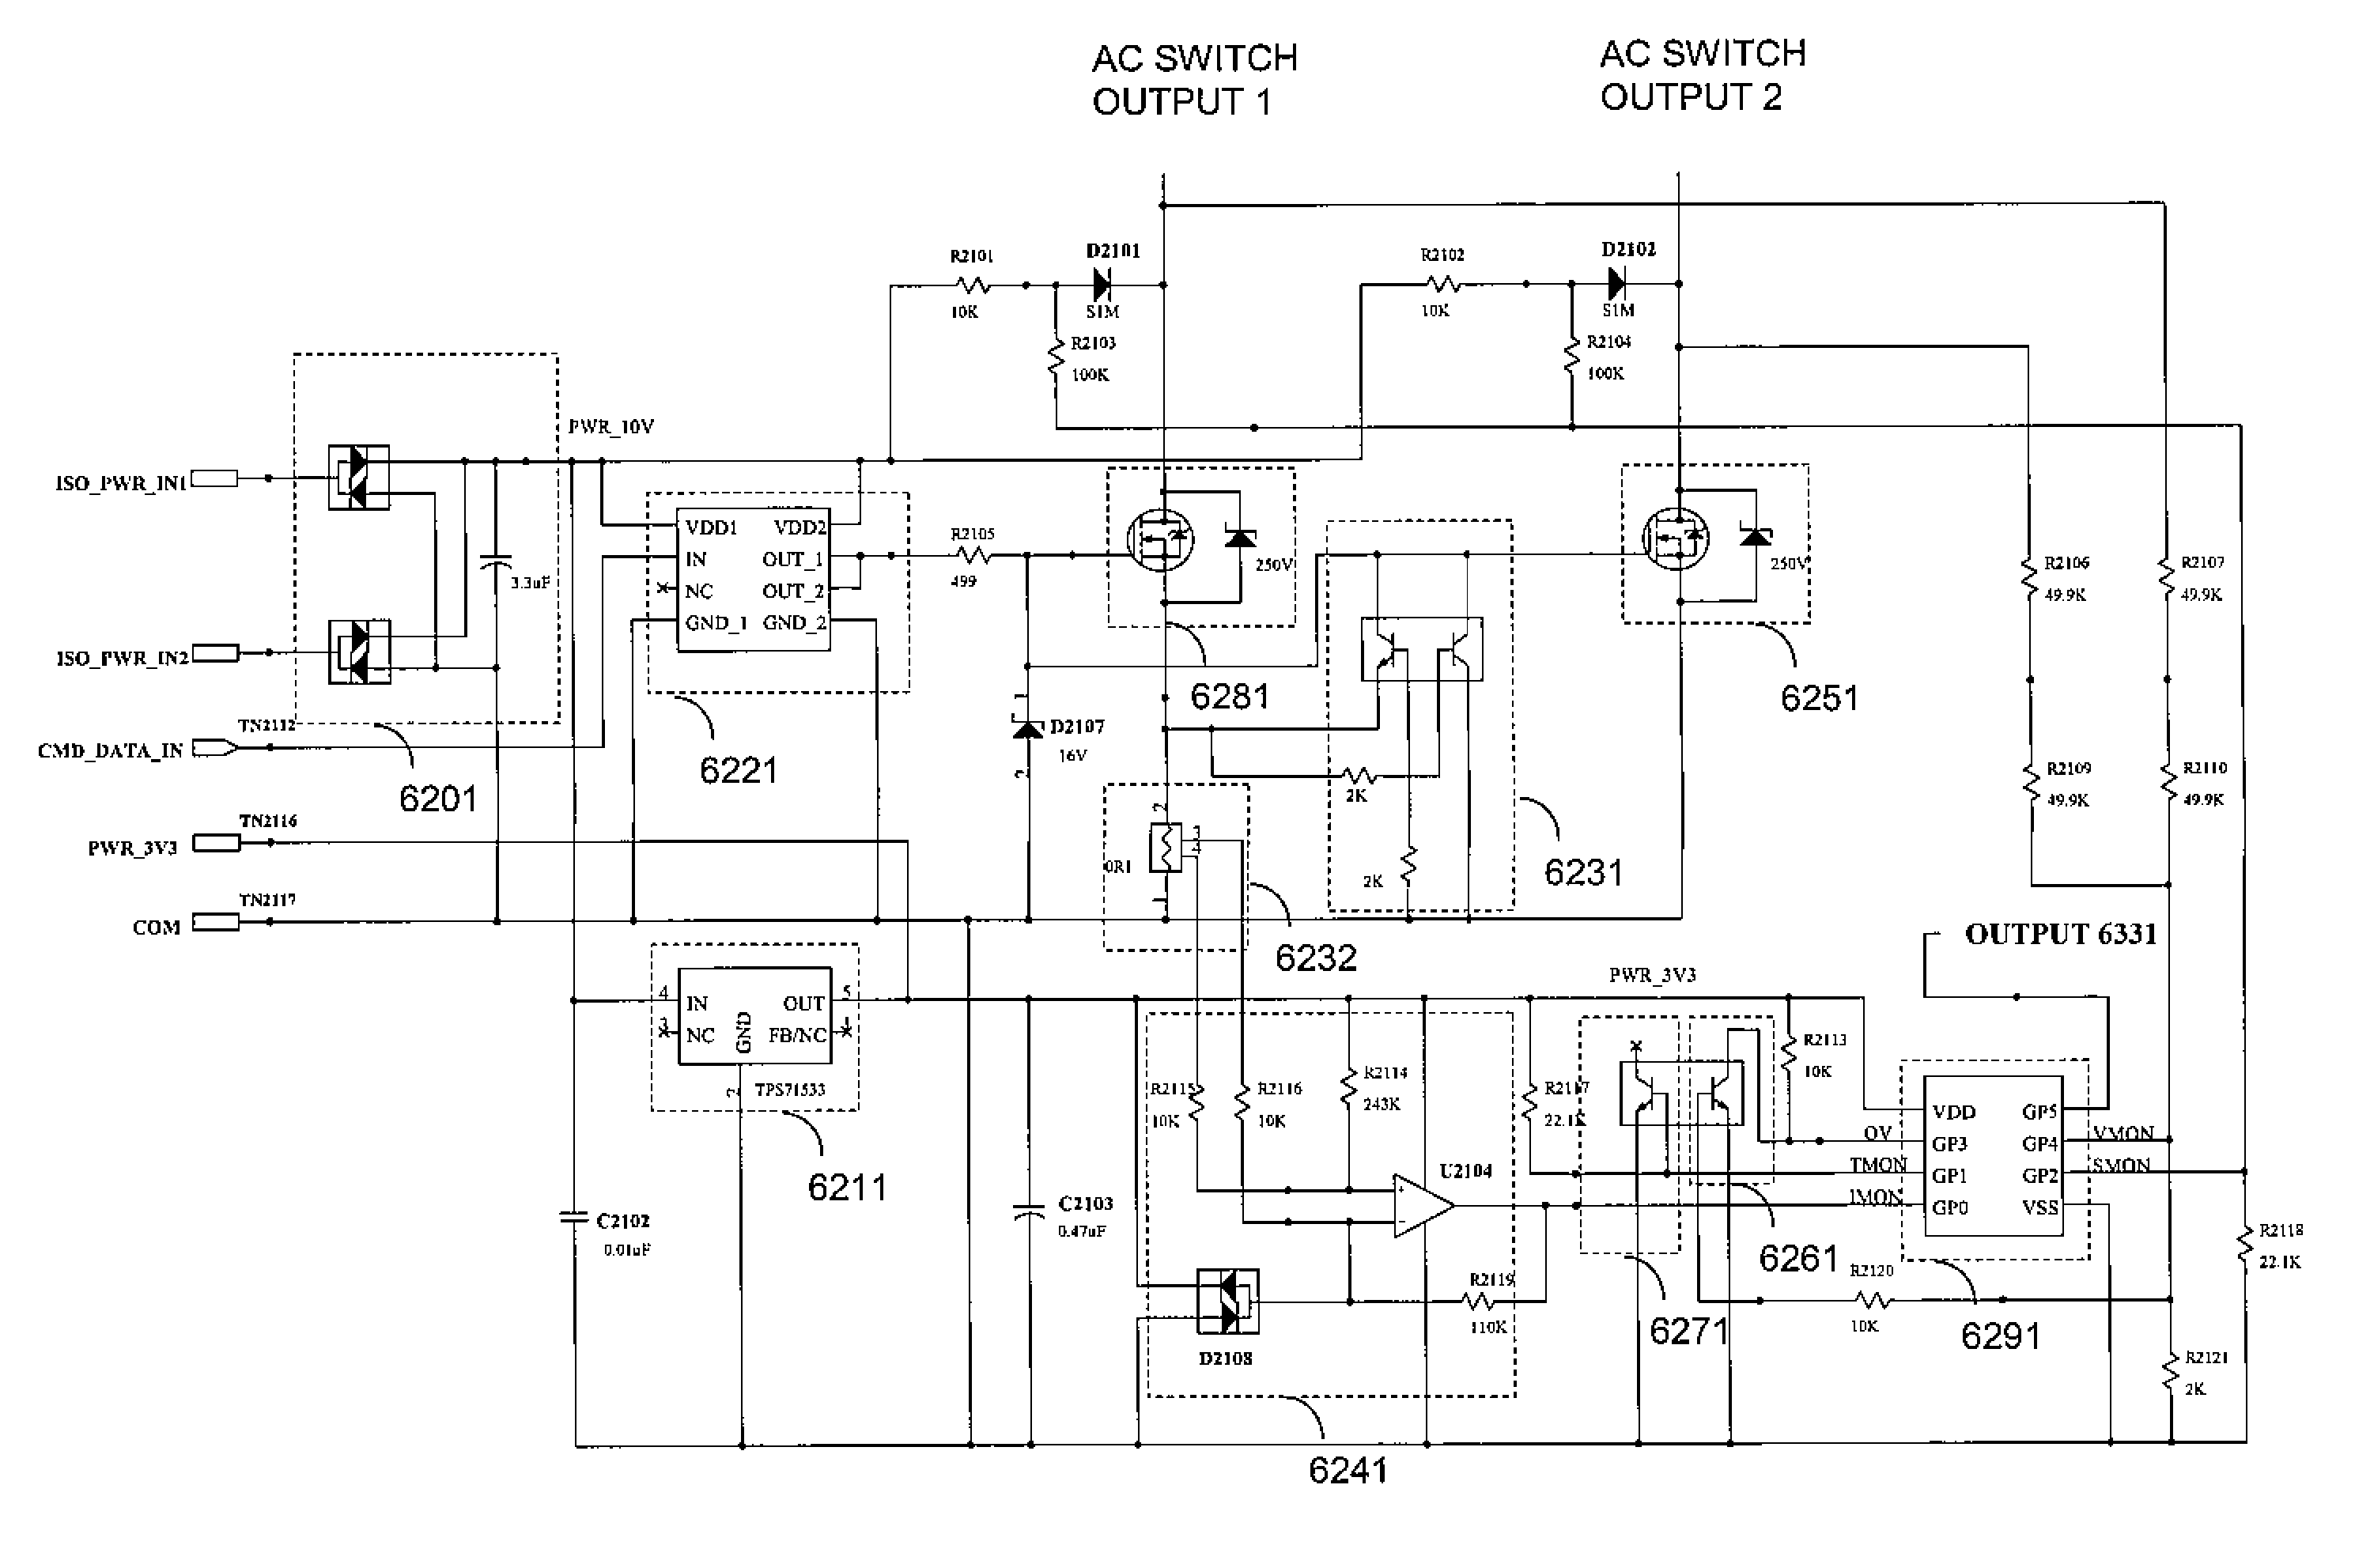 17 New Delta 6201 Pto Switch Diagram